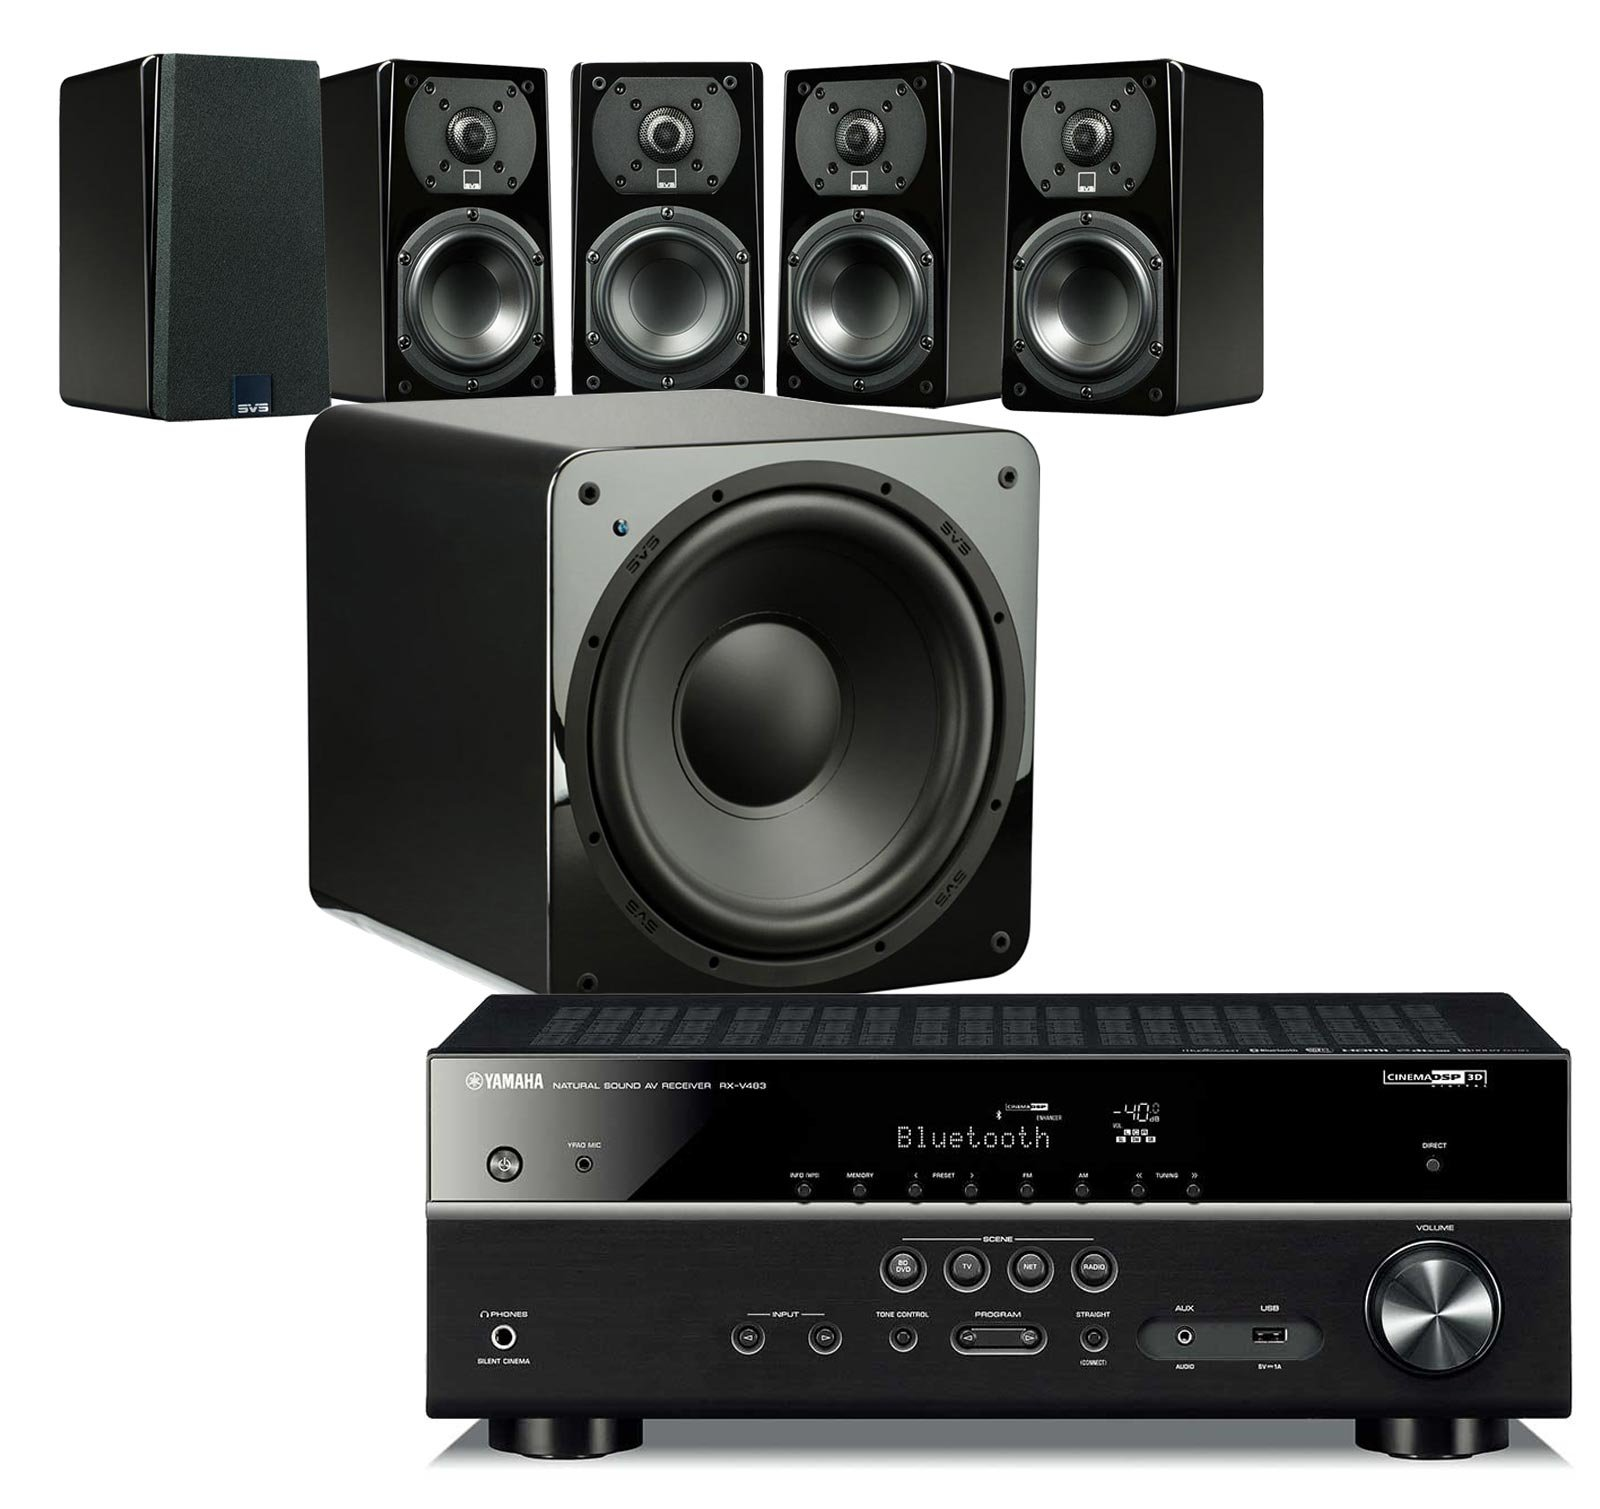 SVS Home Theater Prime Satellite 5.1 Package Featuring 5 Prime Wired Satellite Speakers, SB–1000 Wired Subwoofer (Piano Gloss), and Yamaha RX-V483BL 5.1-Channel 4K Ultra HD AV Receiver with Bluetooth by SVS